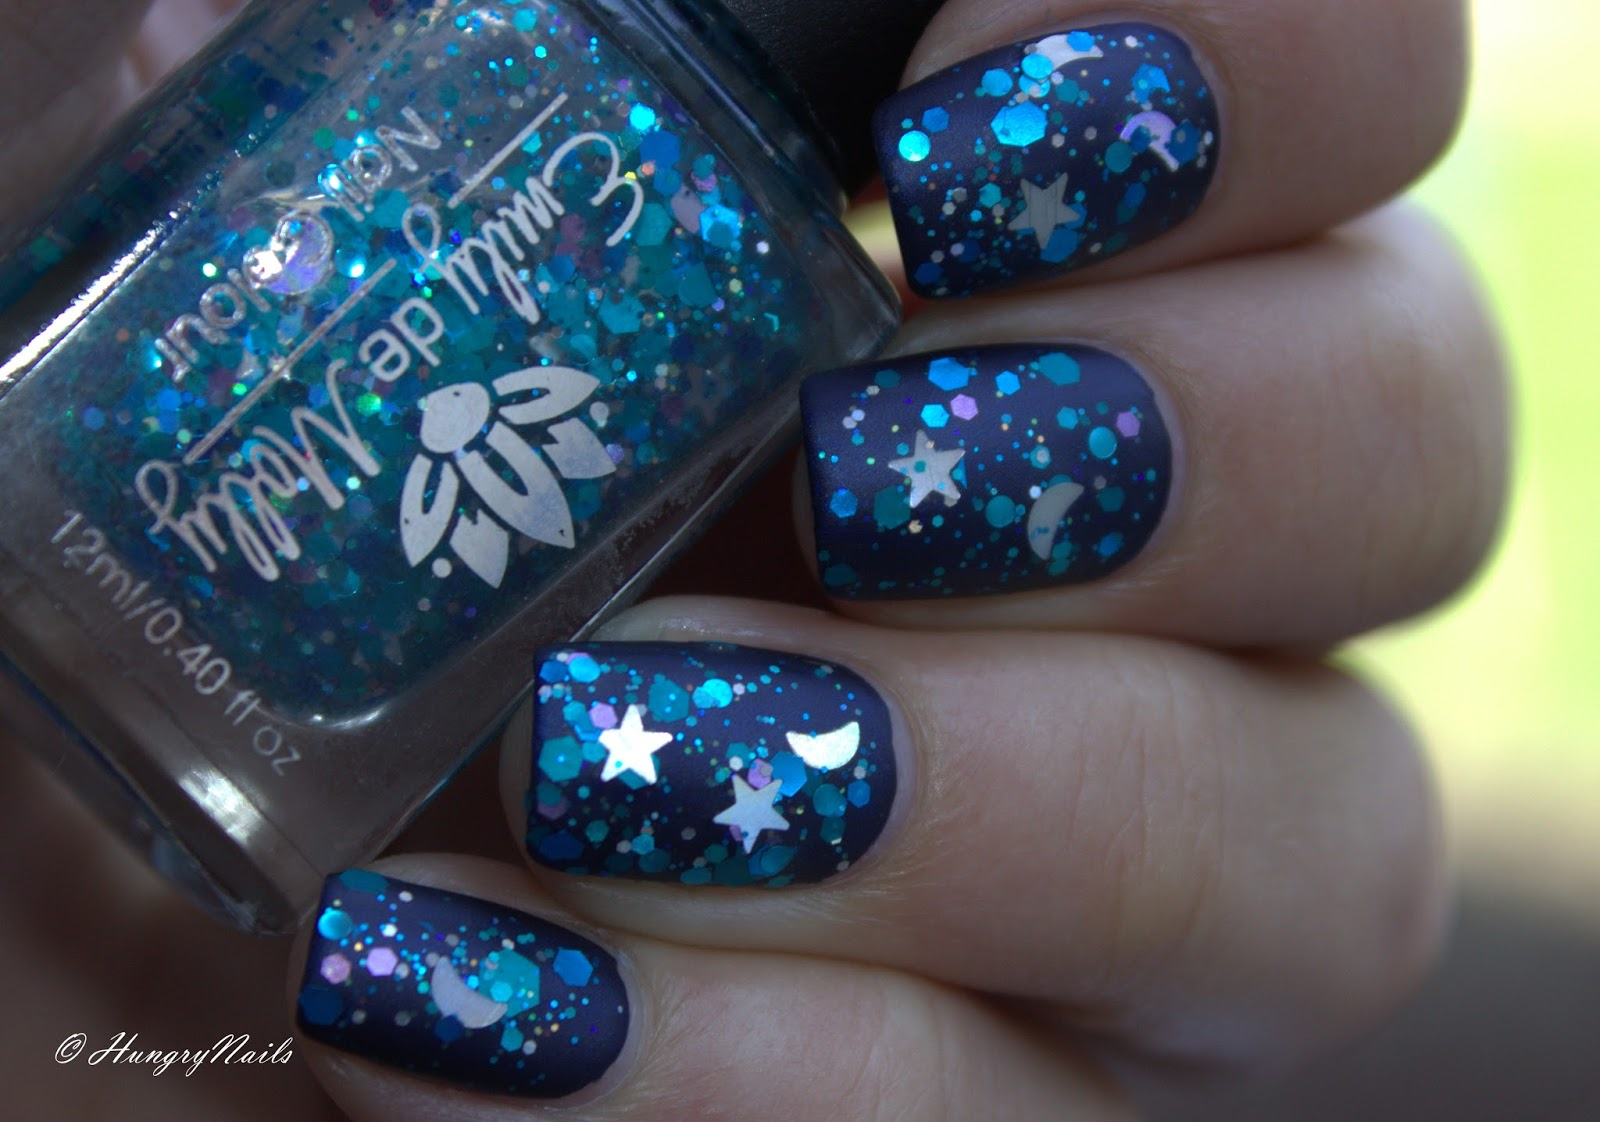 http://hungrynails.blogspot.de/2015/04/falling-skies-queen-of-scots.html